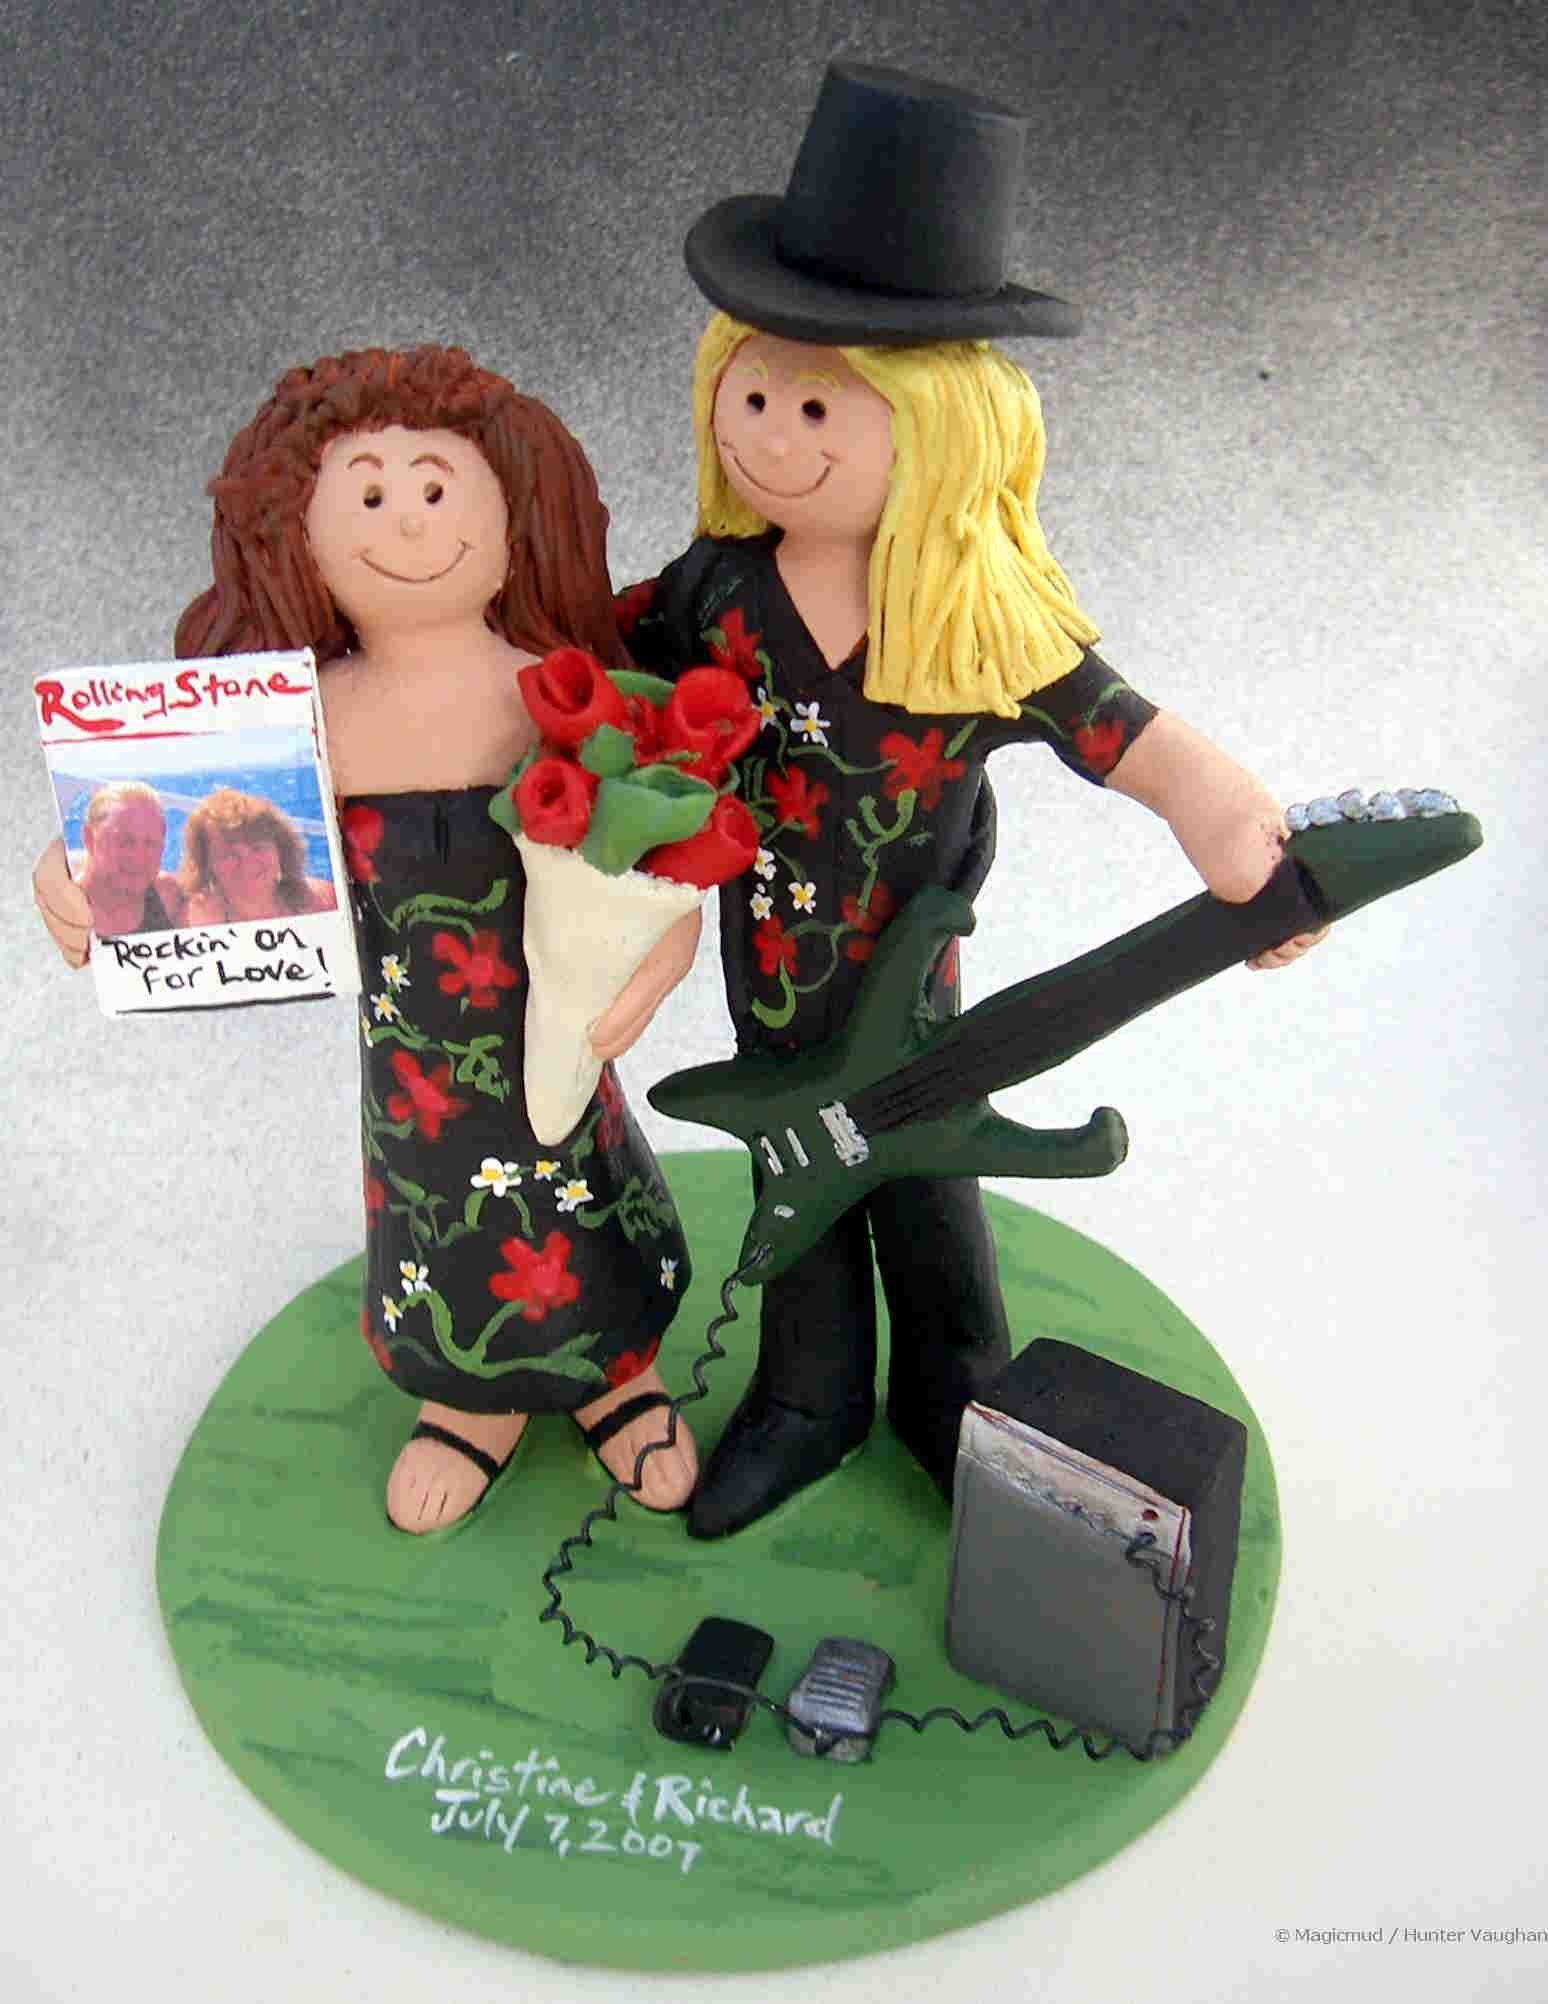 Wedding Cake Topper for a Rock Star